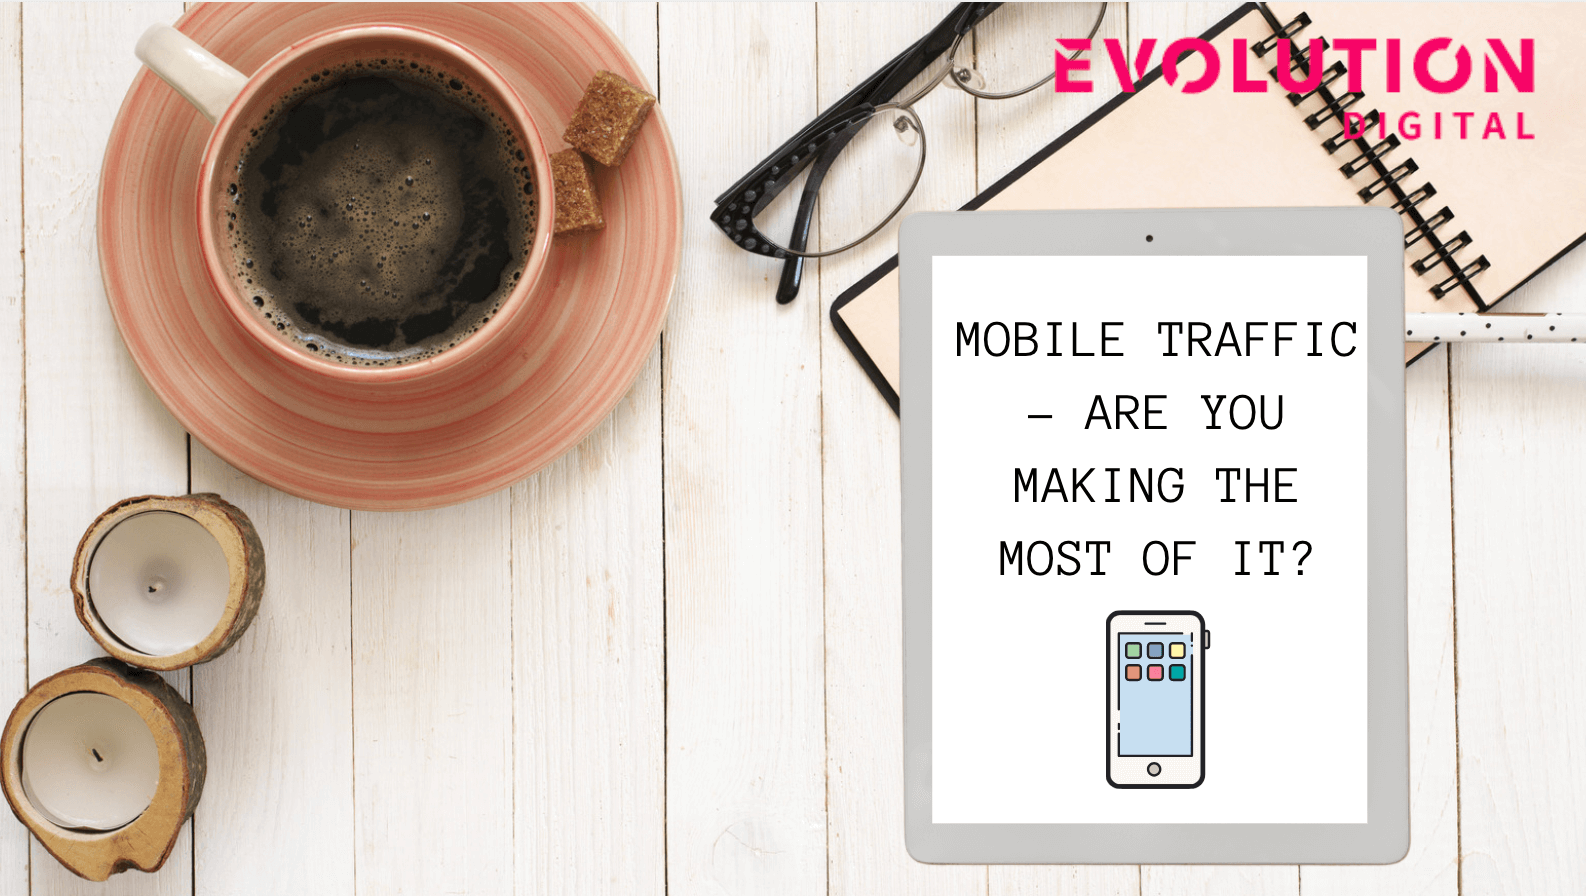 Mobile Traffic - Are you making the most of it?